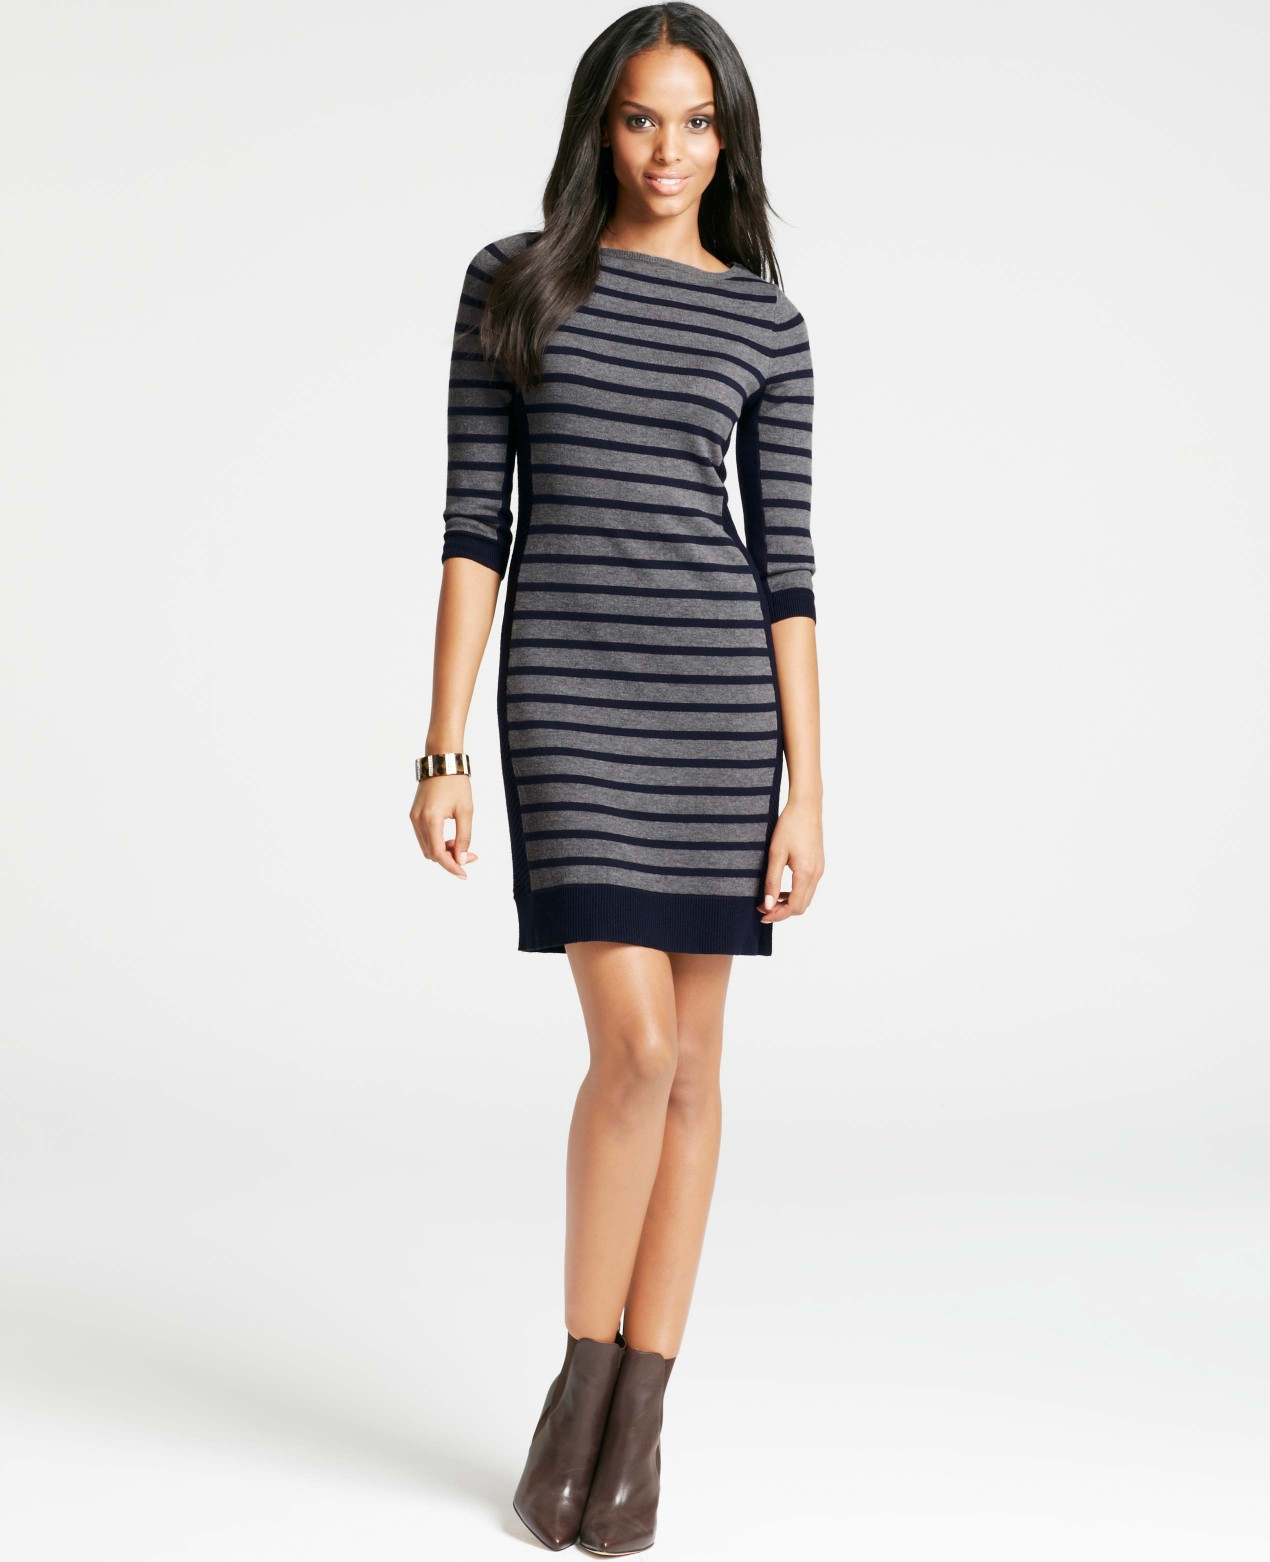 Fit & Flare Sweater Dress: Many of our classic dress styles are available in misses, petite, tall and plus sizes. Refine by: Clear. Style. Sundresses Maxi Dresses Long Dresses Sheath Dresses Sweater Dresses A-Line Dresses Corkscrew Dresses Denim Dresses Empire Dresses Fit & Flare Dresses.